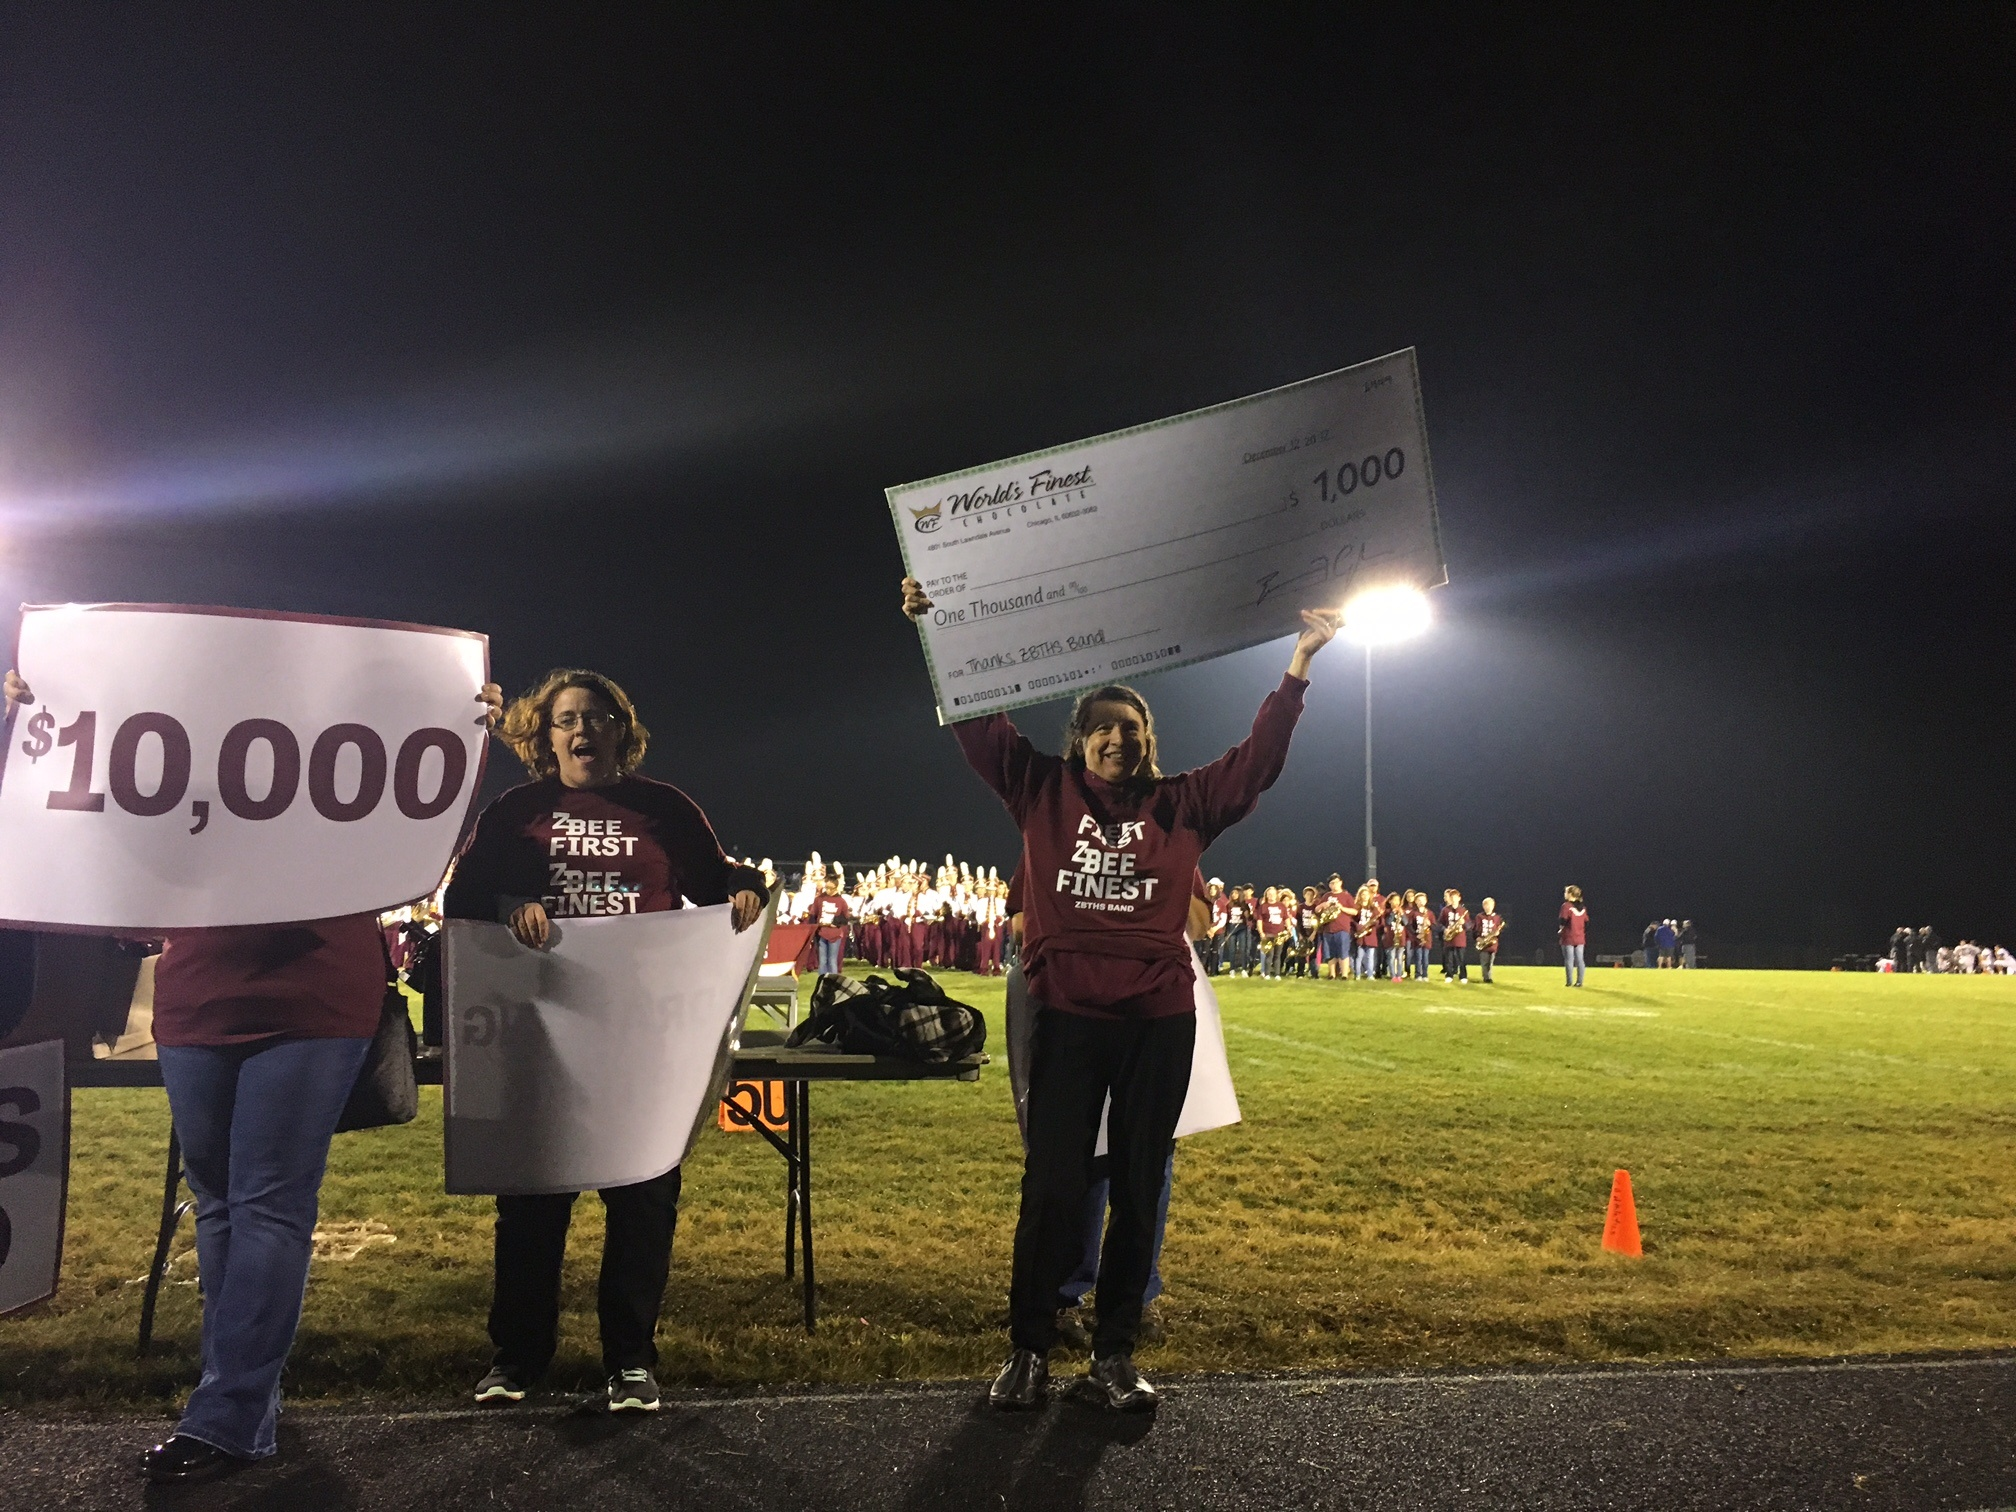 Picture: Band booster holding up large $1000 check as a prize for most sales in the fundraiser